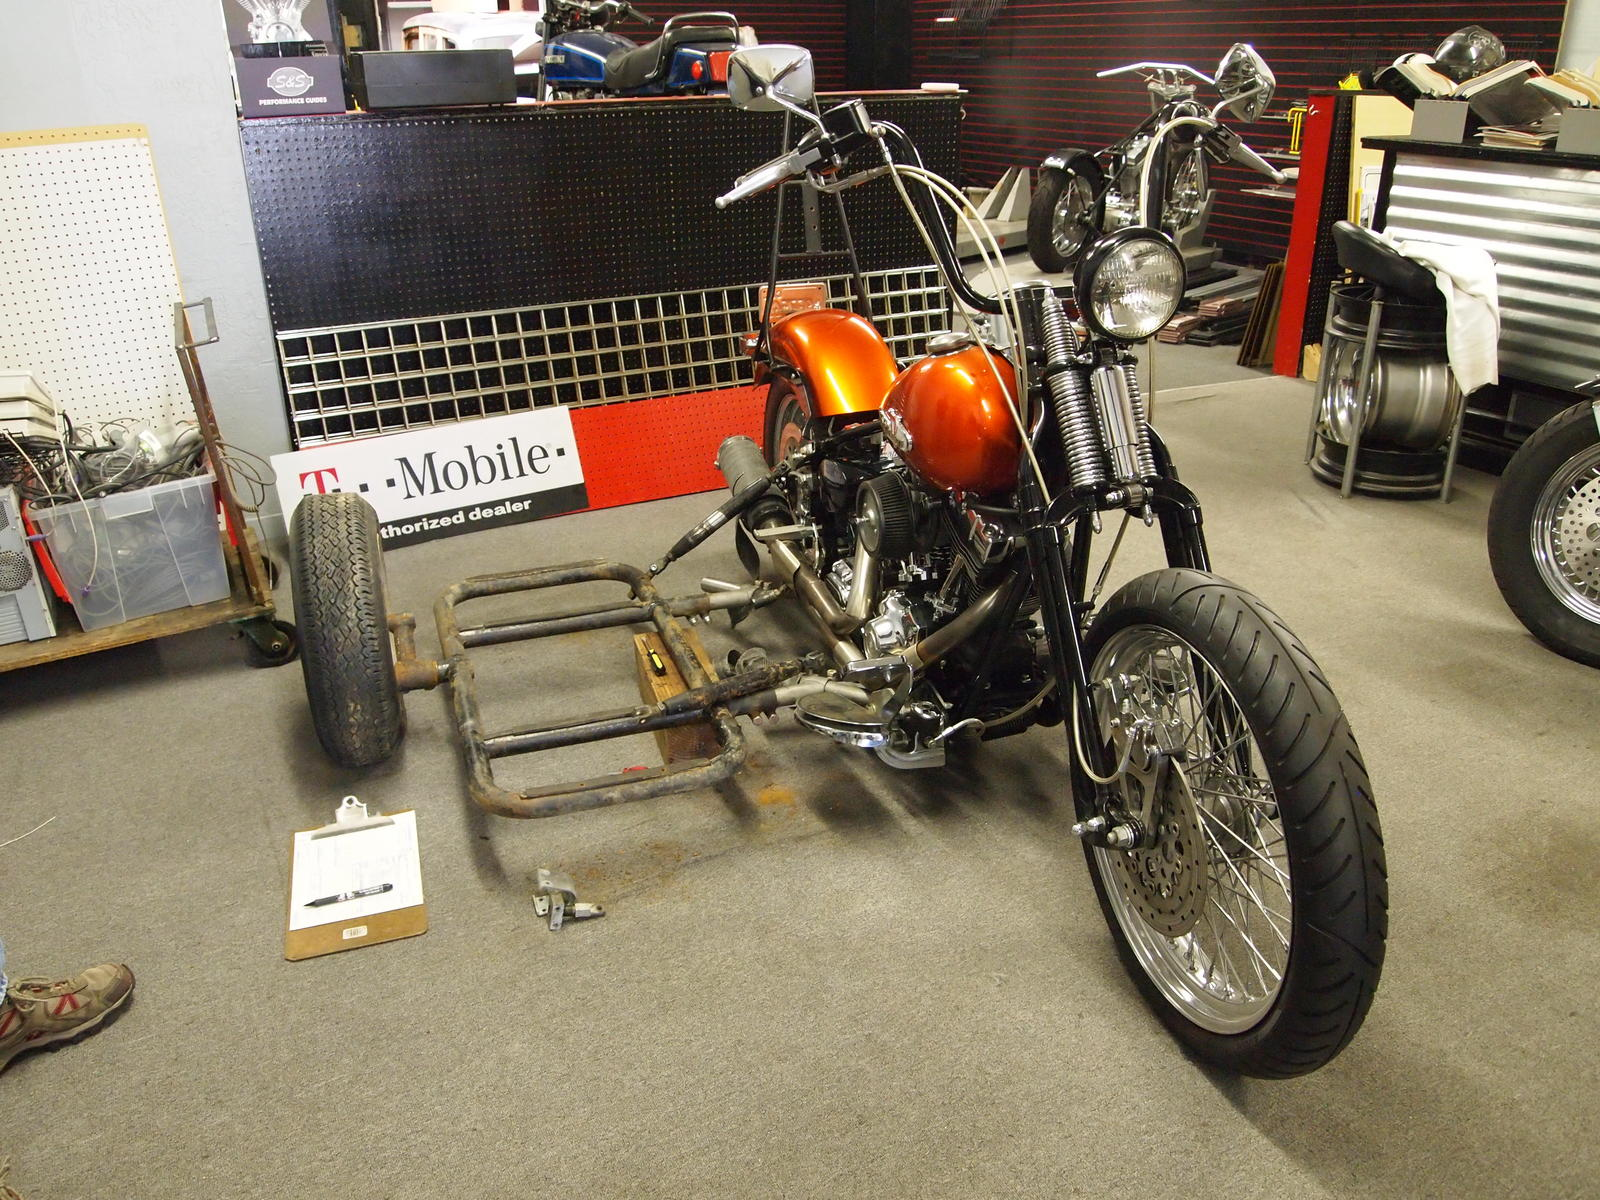 Harley Bike Build With Sidecar Almost Completed Any Other